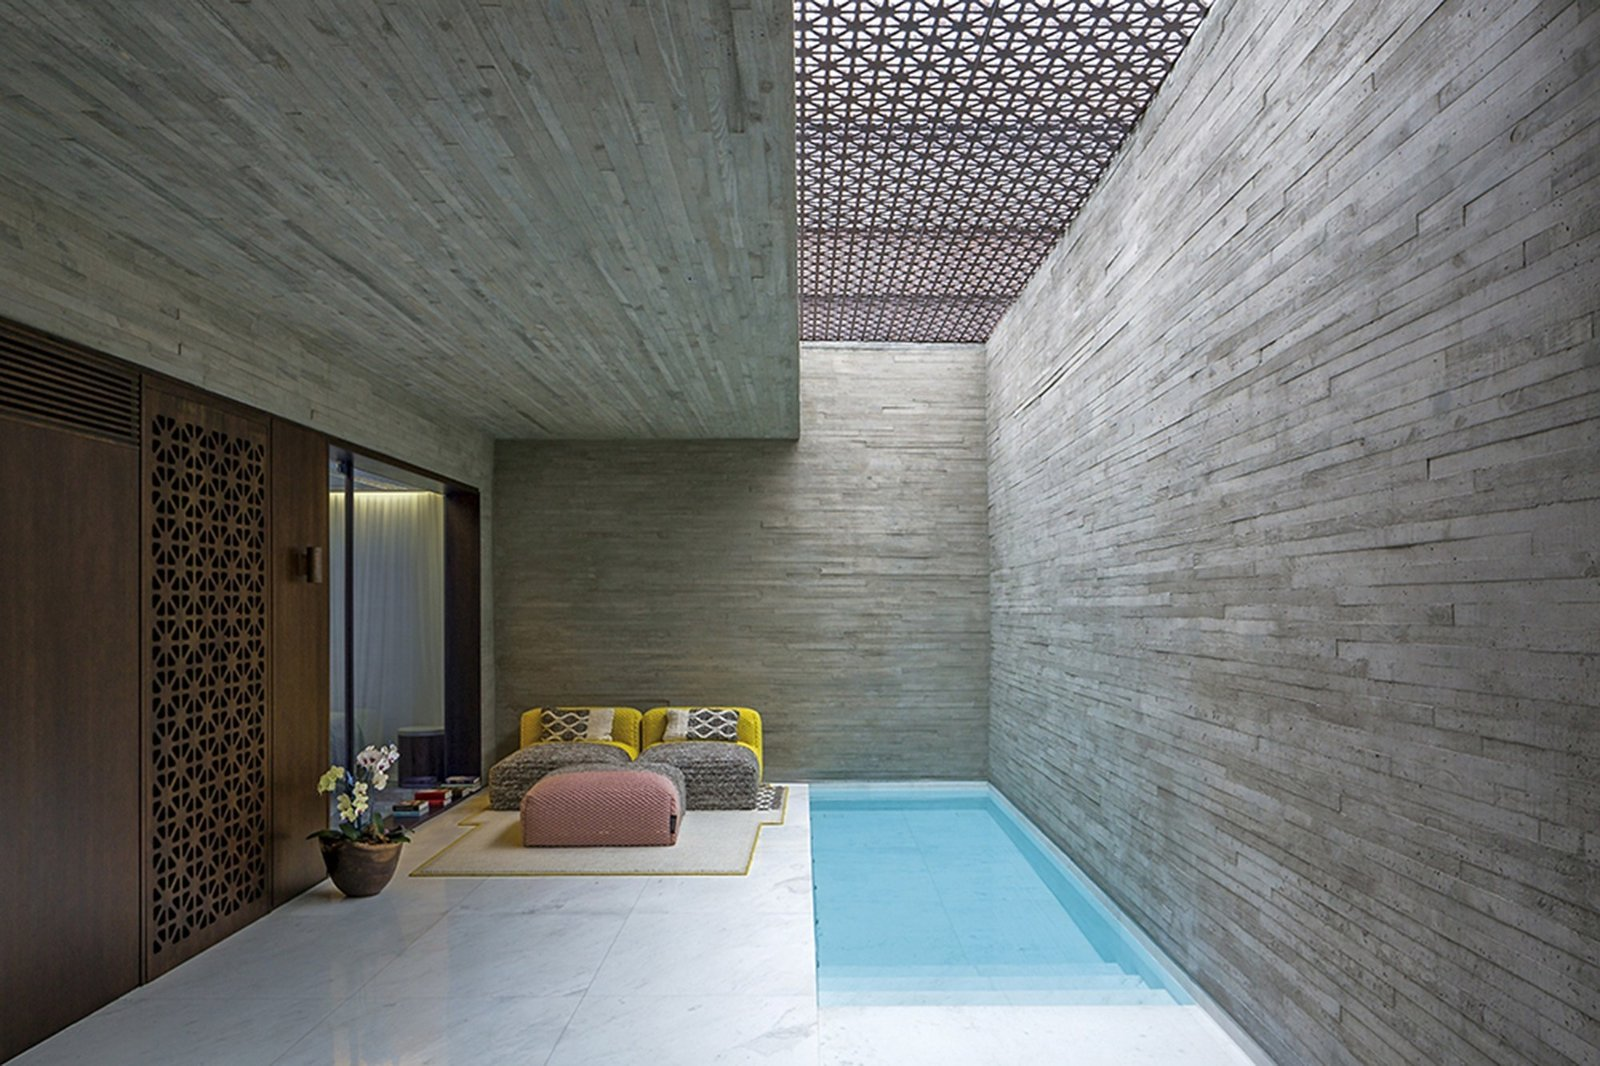 5 Striking Designs That Use Perforated Cement Breeze-Blocks in Interesting Ways